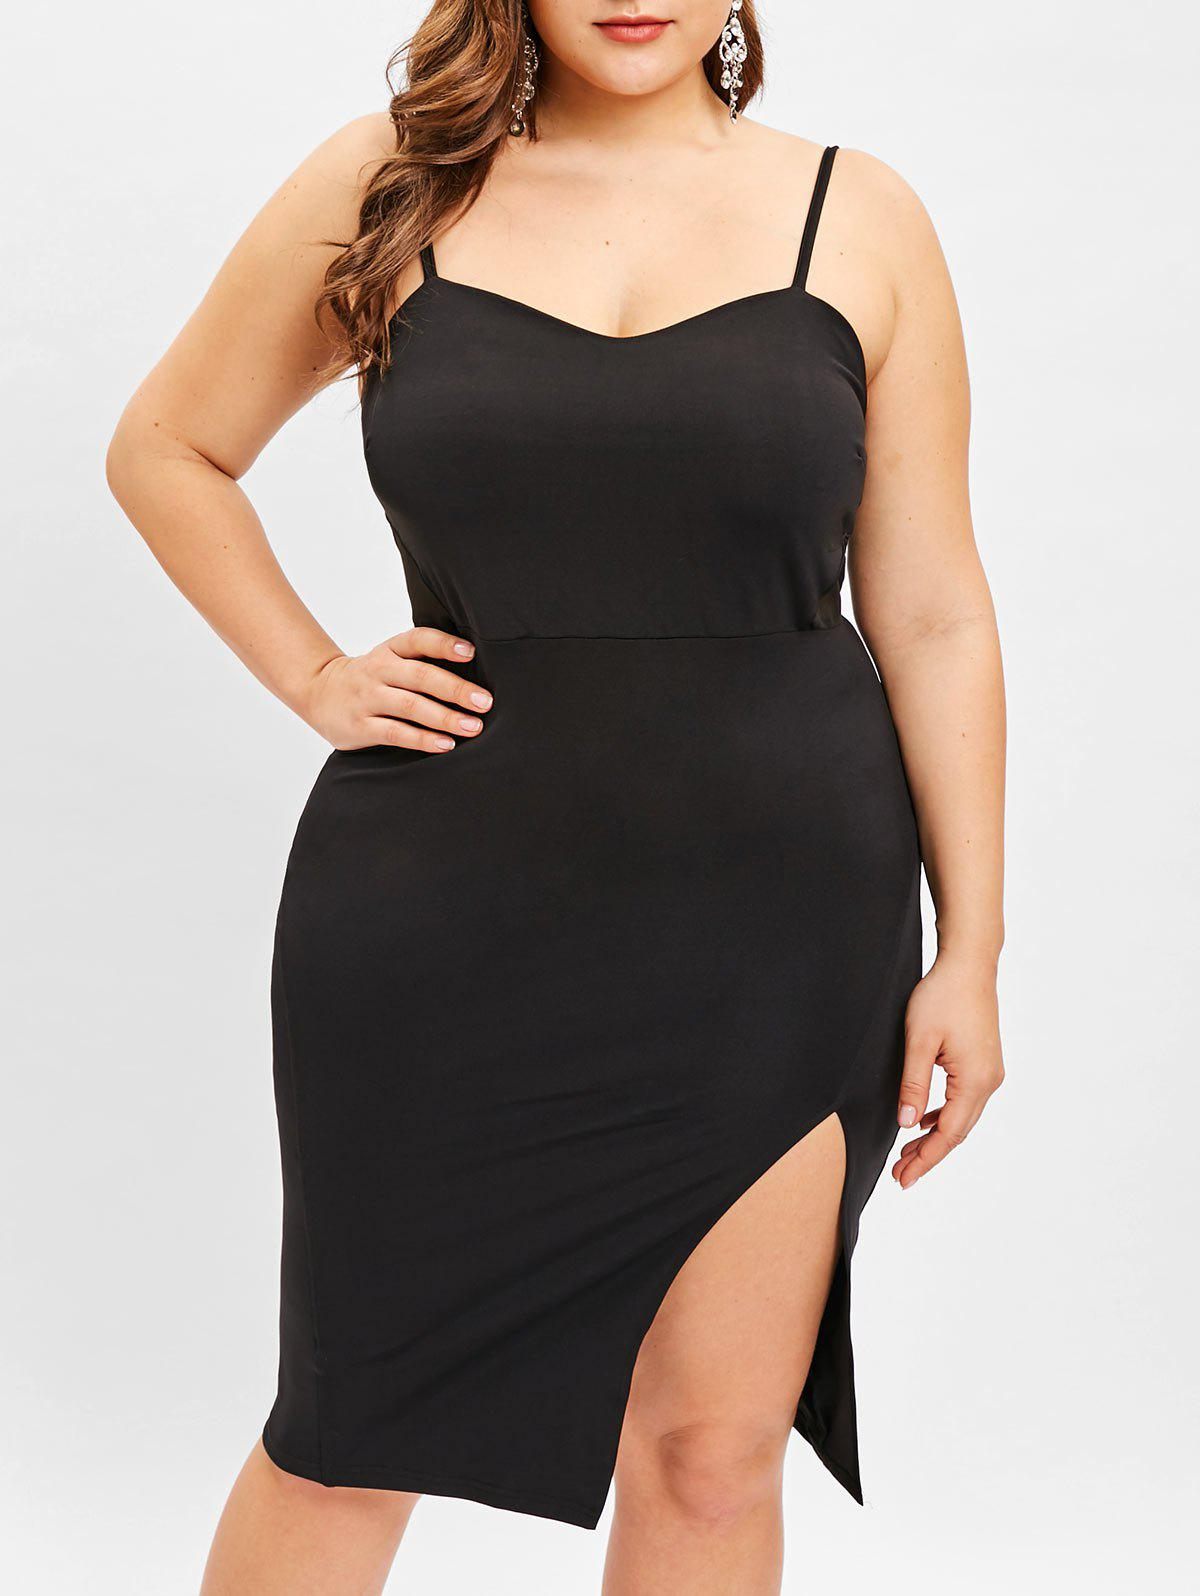 2bcfdd2f0467 42% OFF] Plus Size Slit Cami Dress With Mesh   Rosegal